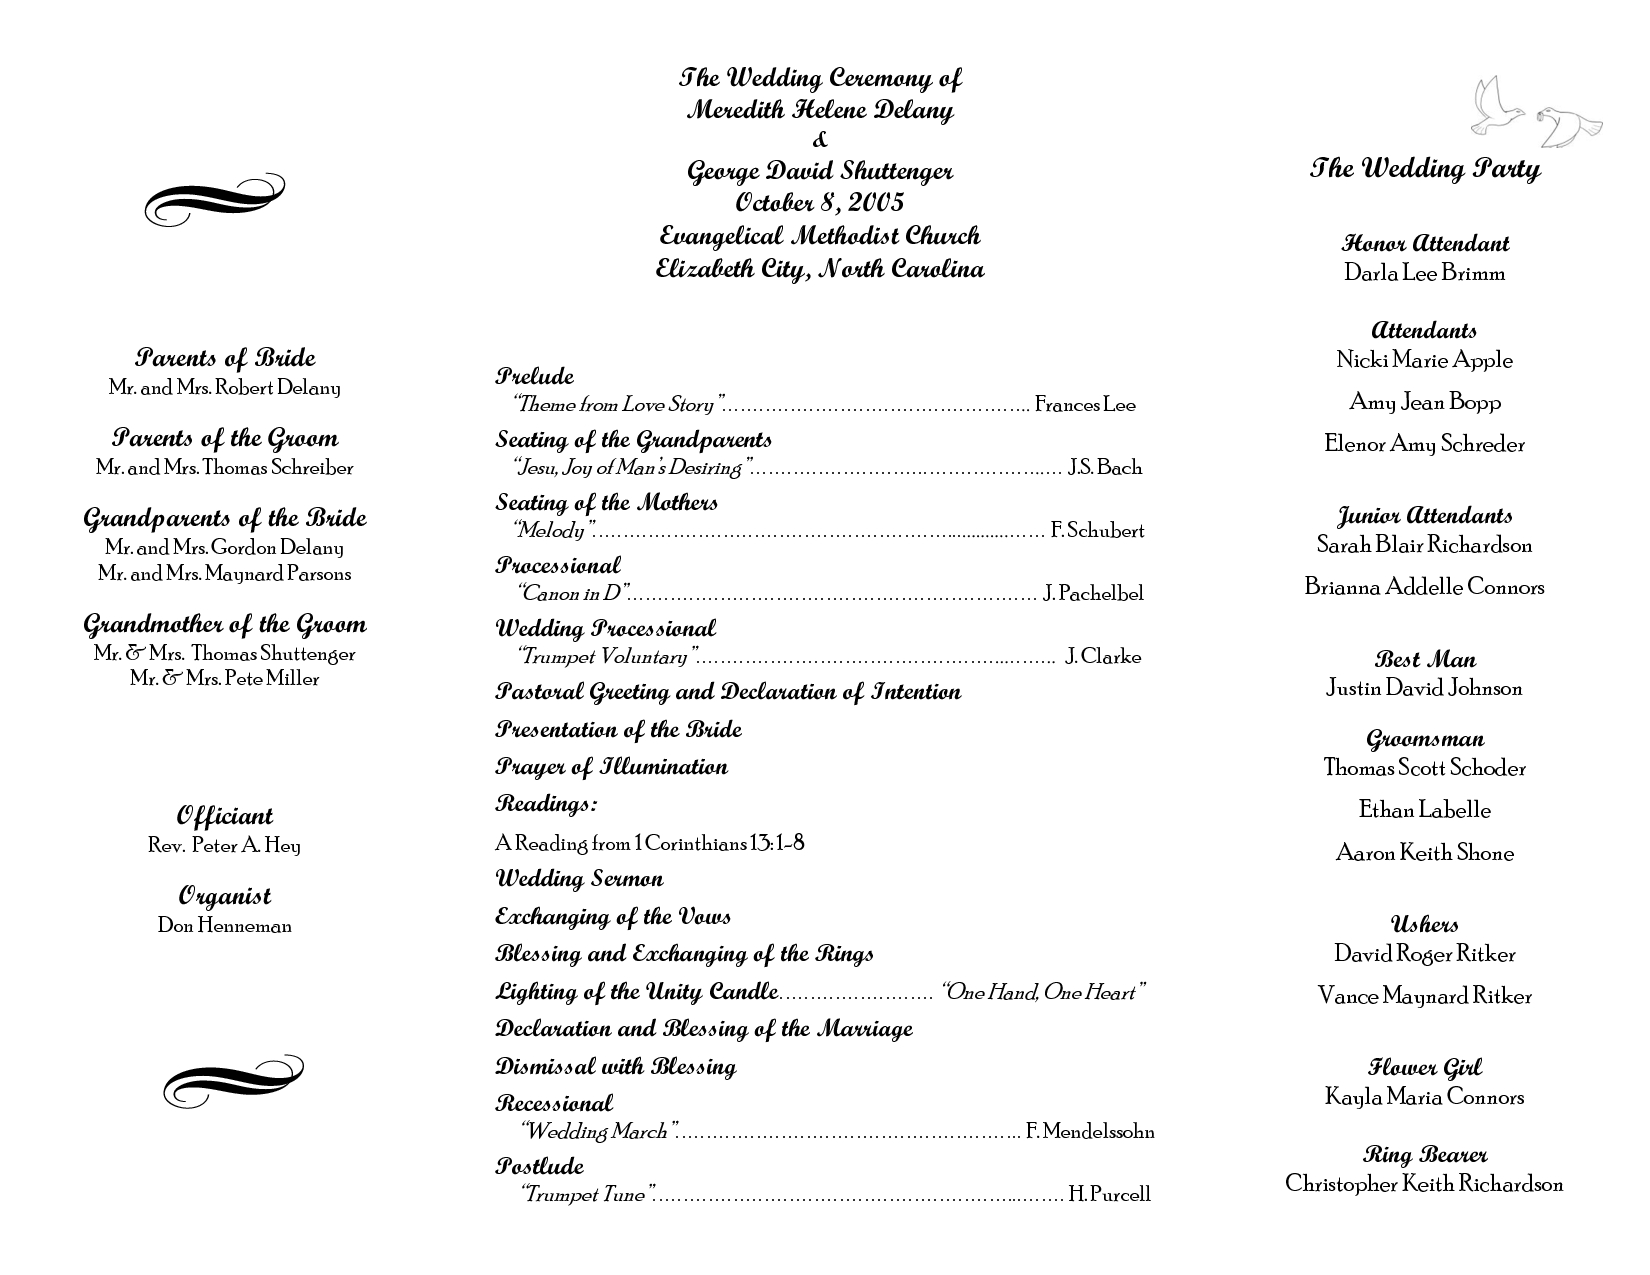 Wedding Program Cover Templates. 1000 Images About Printable Wedding - Free Printable Wedding Program Templates Word